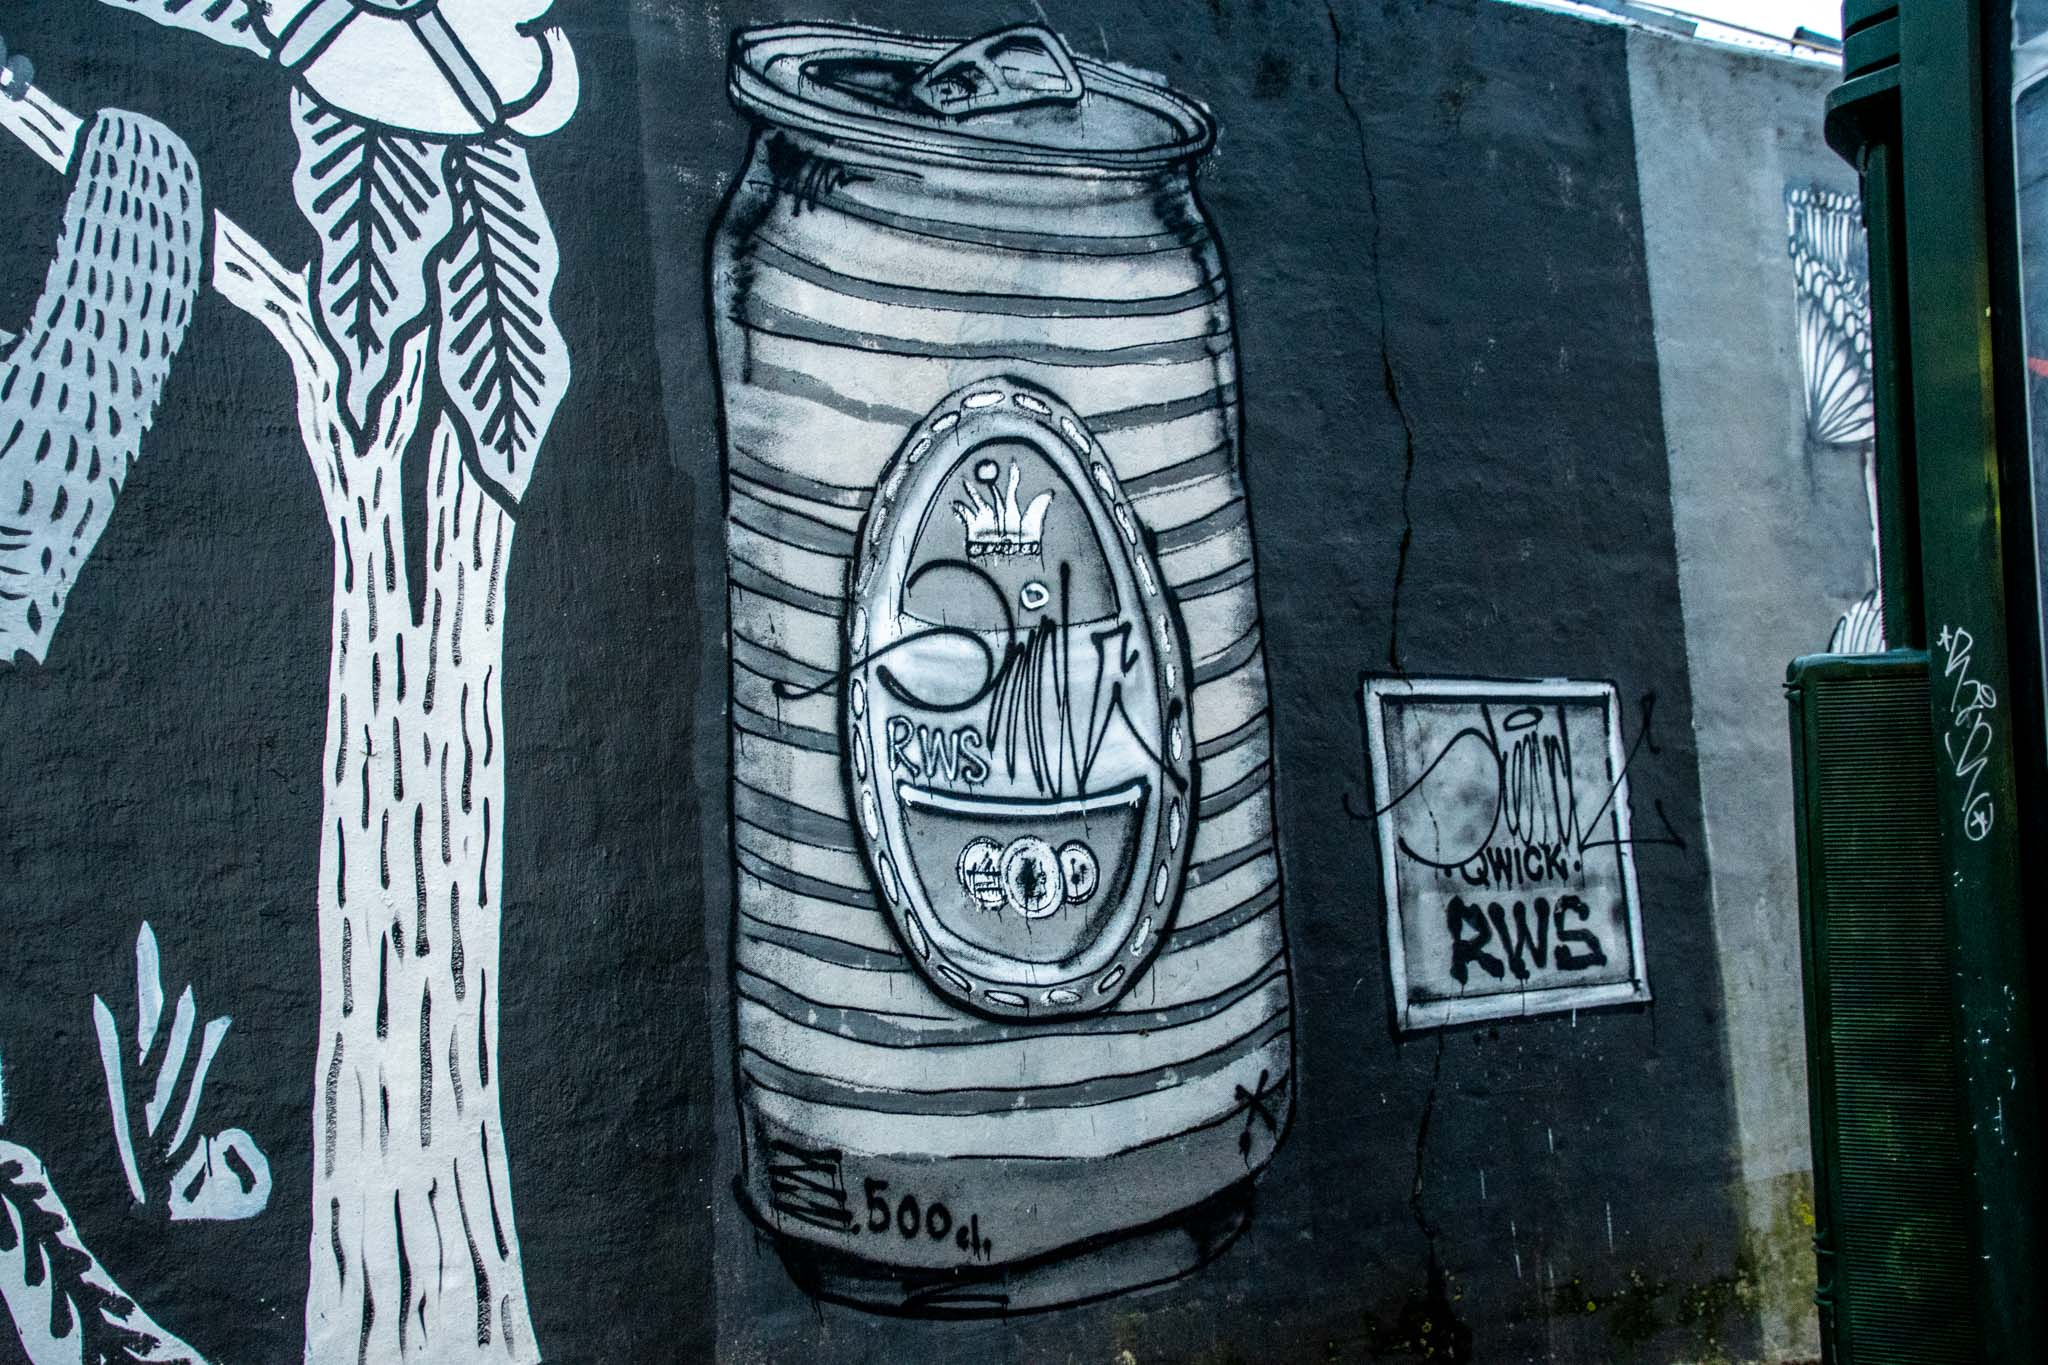 Street murals like this beer can are temporary